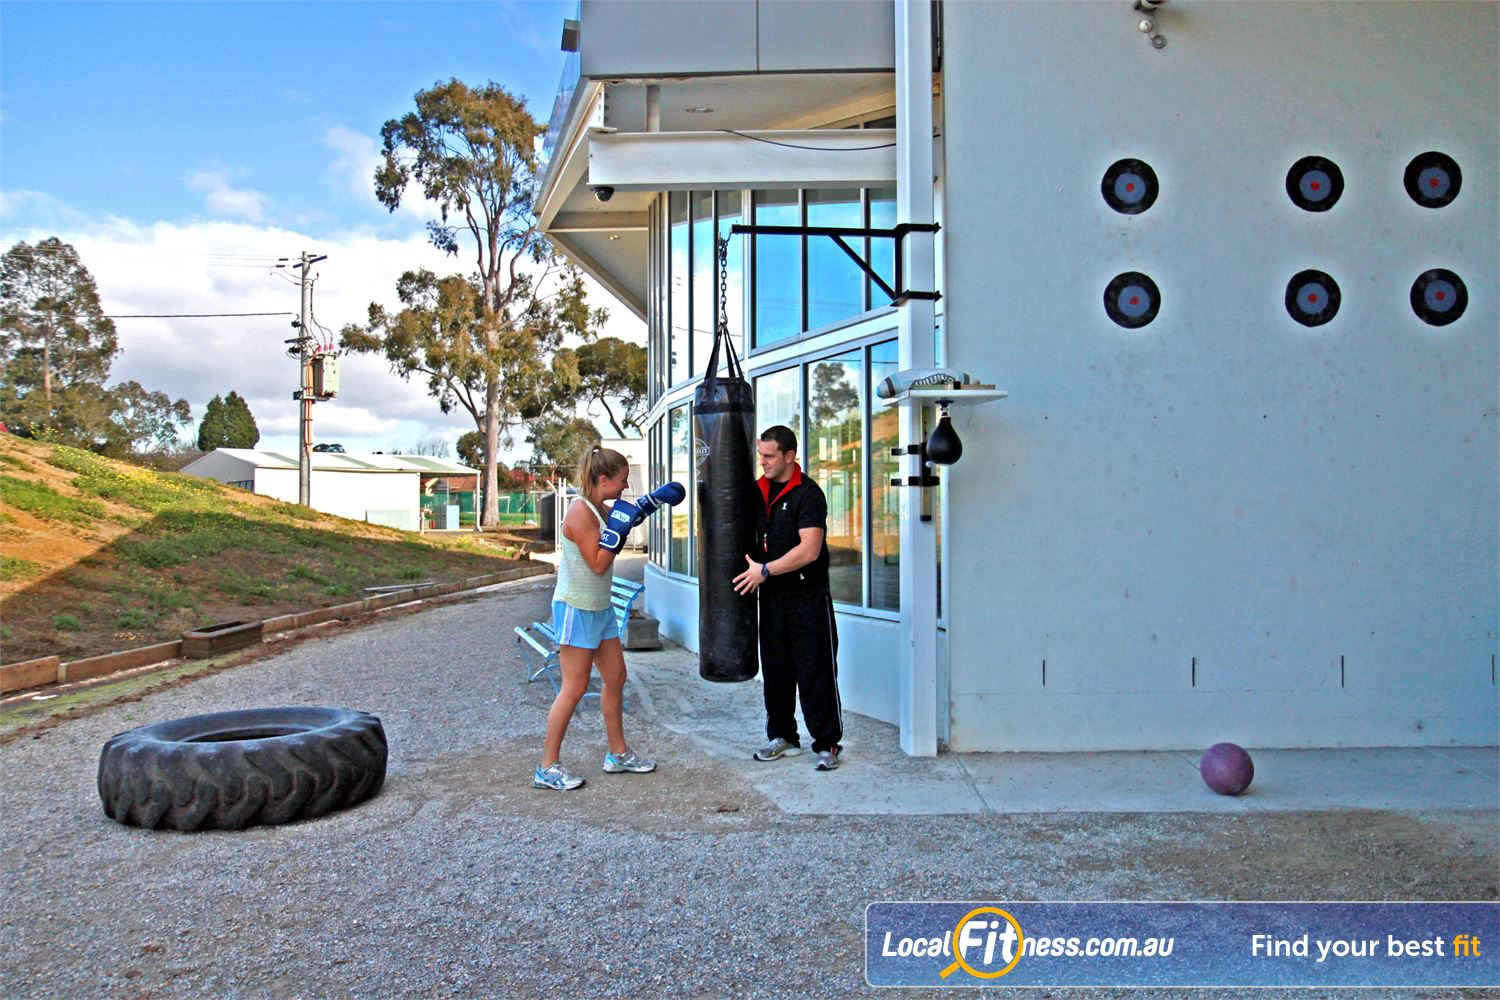 Ascot Vale Leisure Centre Ascot Vale Outdoor boot camp and crossfit training environment in Ascot Vale.